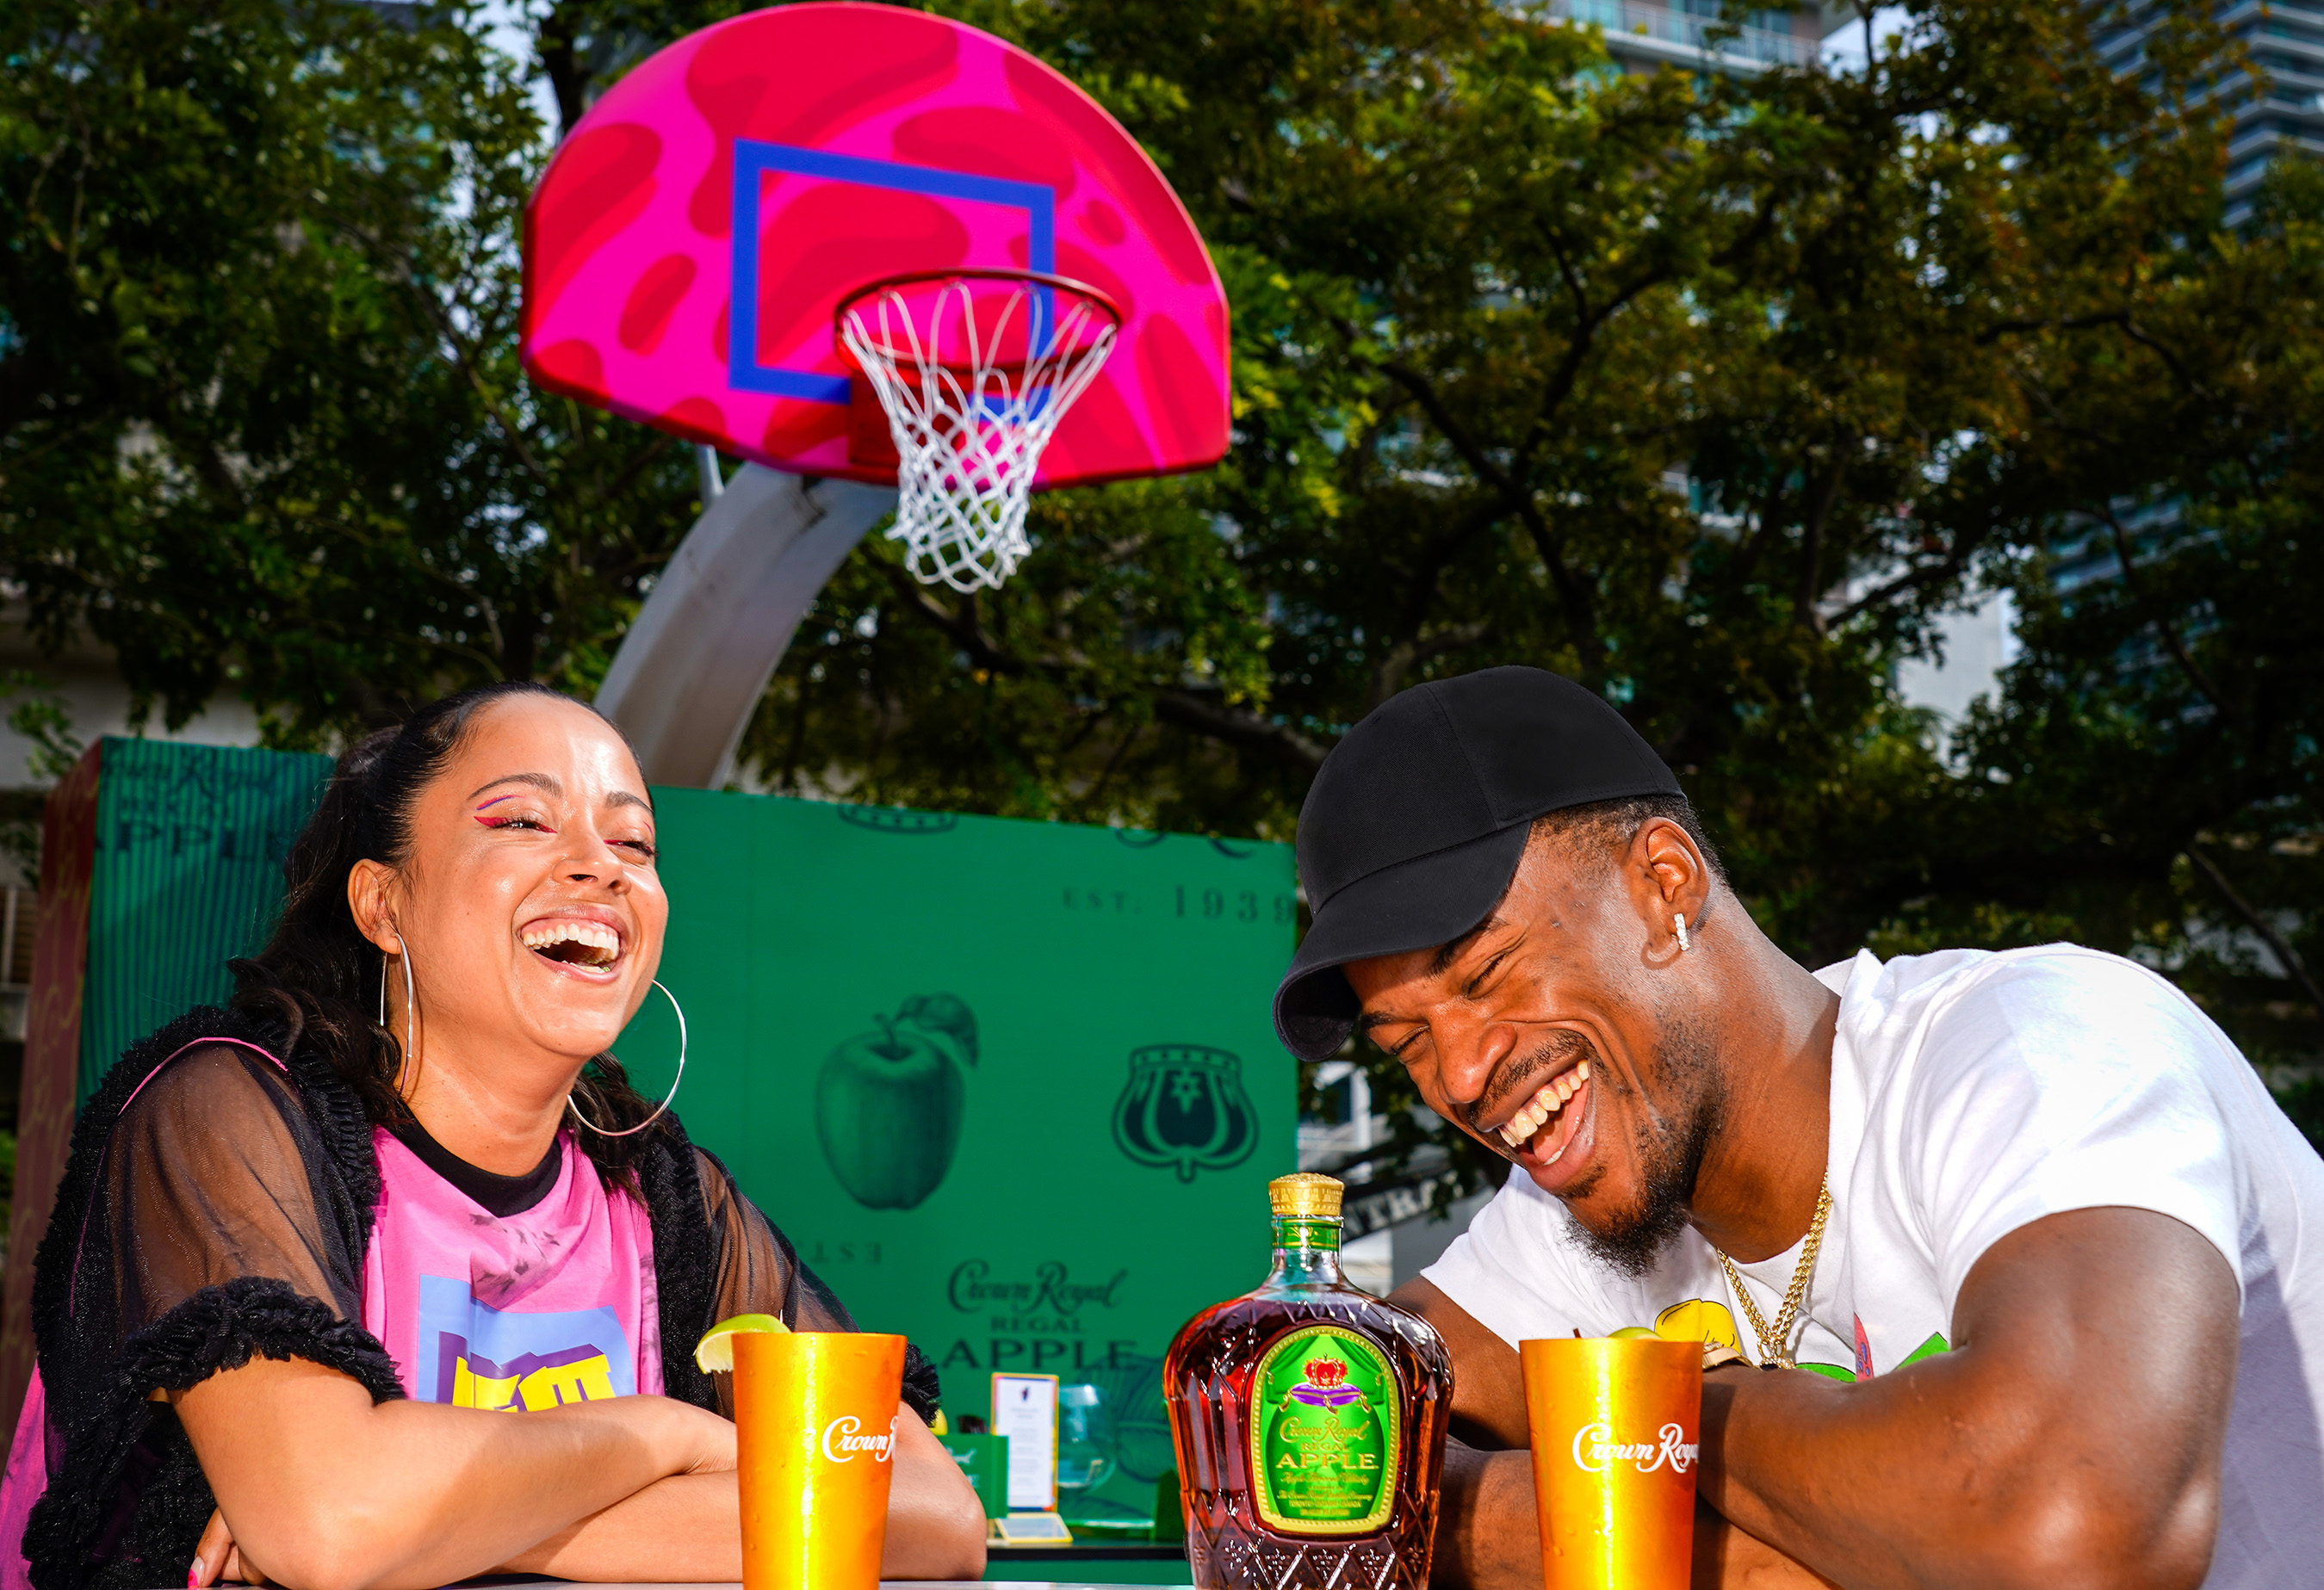 Jimmy Butler and D'ana of COVL team up with Crown Royal Regal Apple to unveil The Royal Court at Miami Art Week 2019 (Photo by Jack Dempsey for Crown Royal)